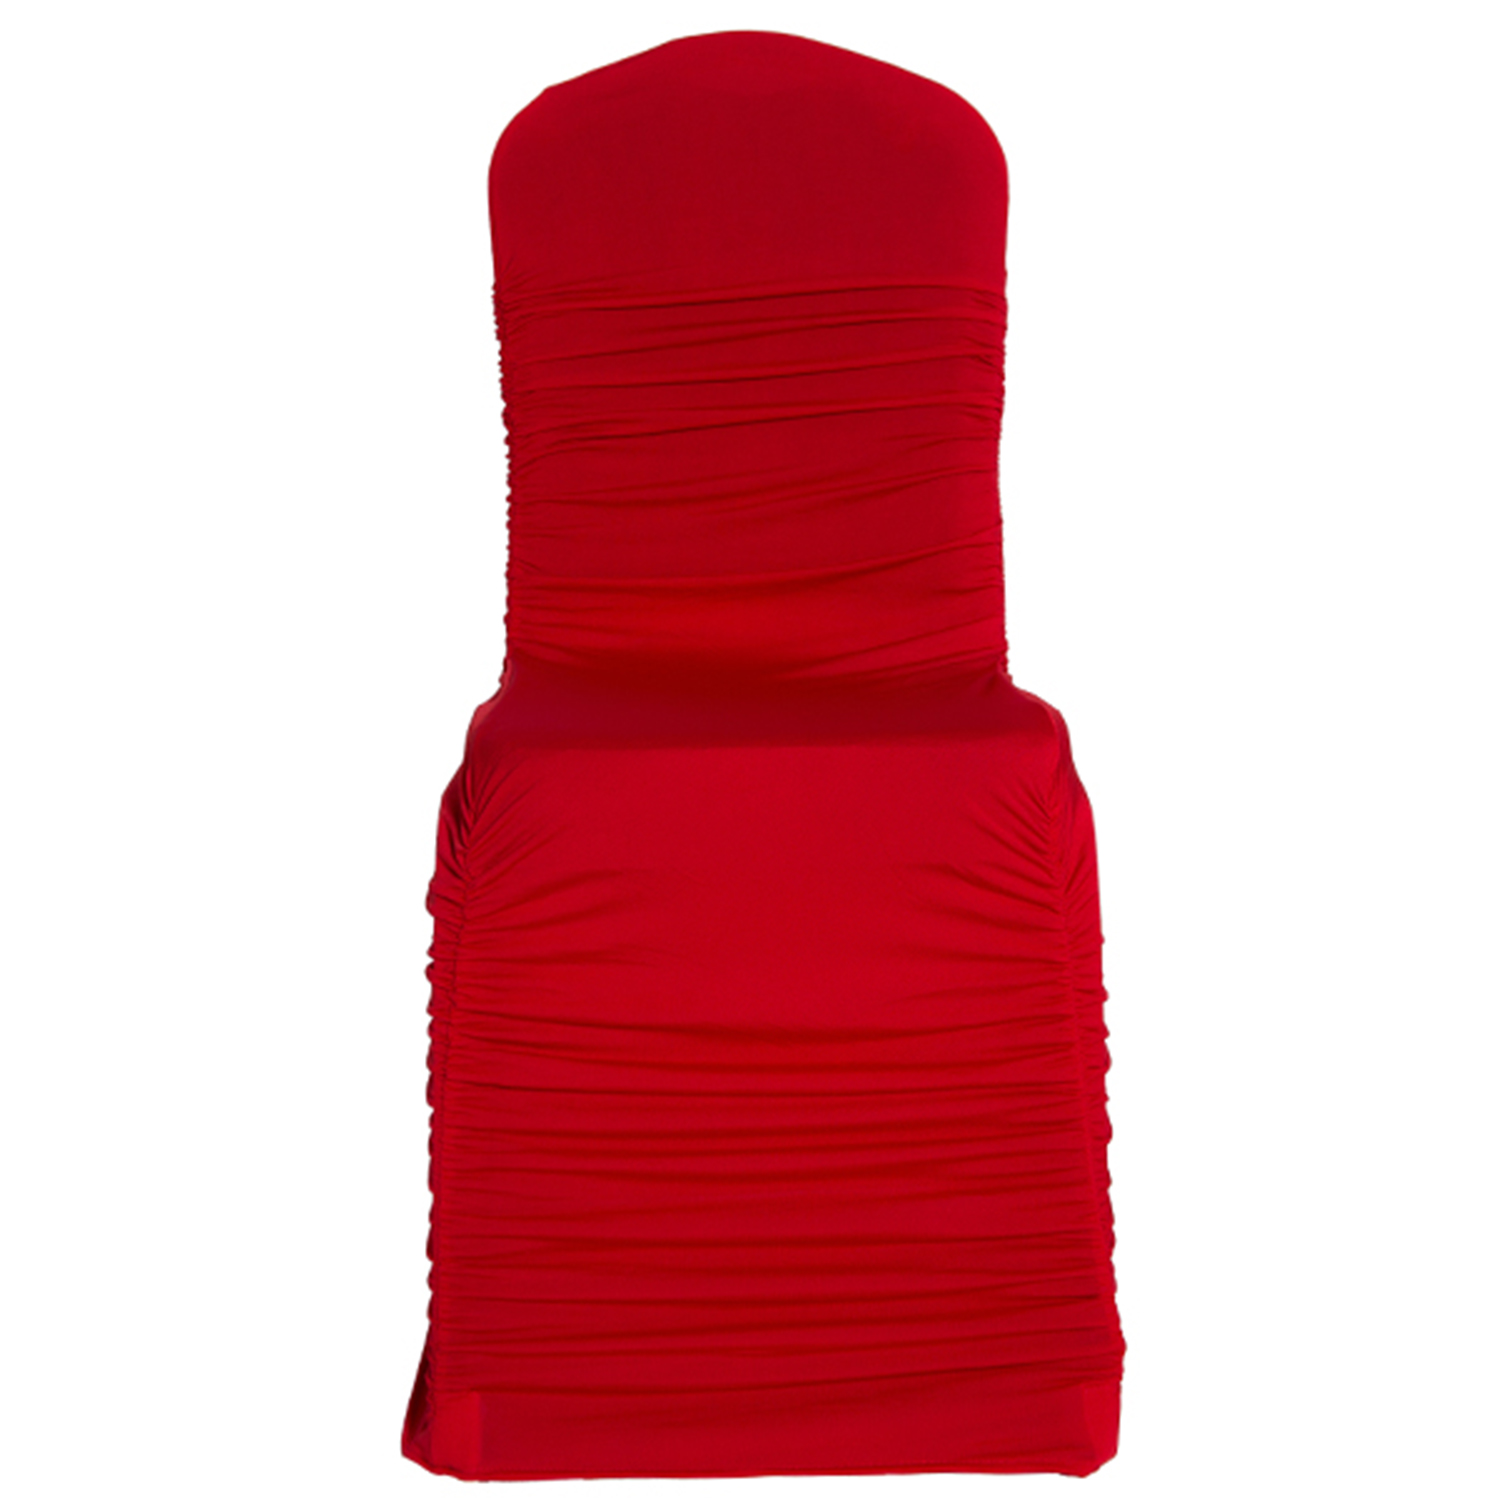 ruched spandex chair cover notre dame office covers red wedding reception